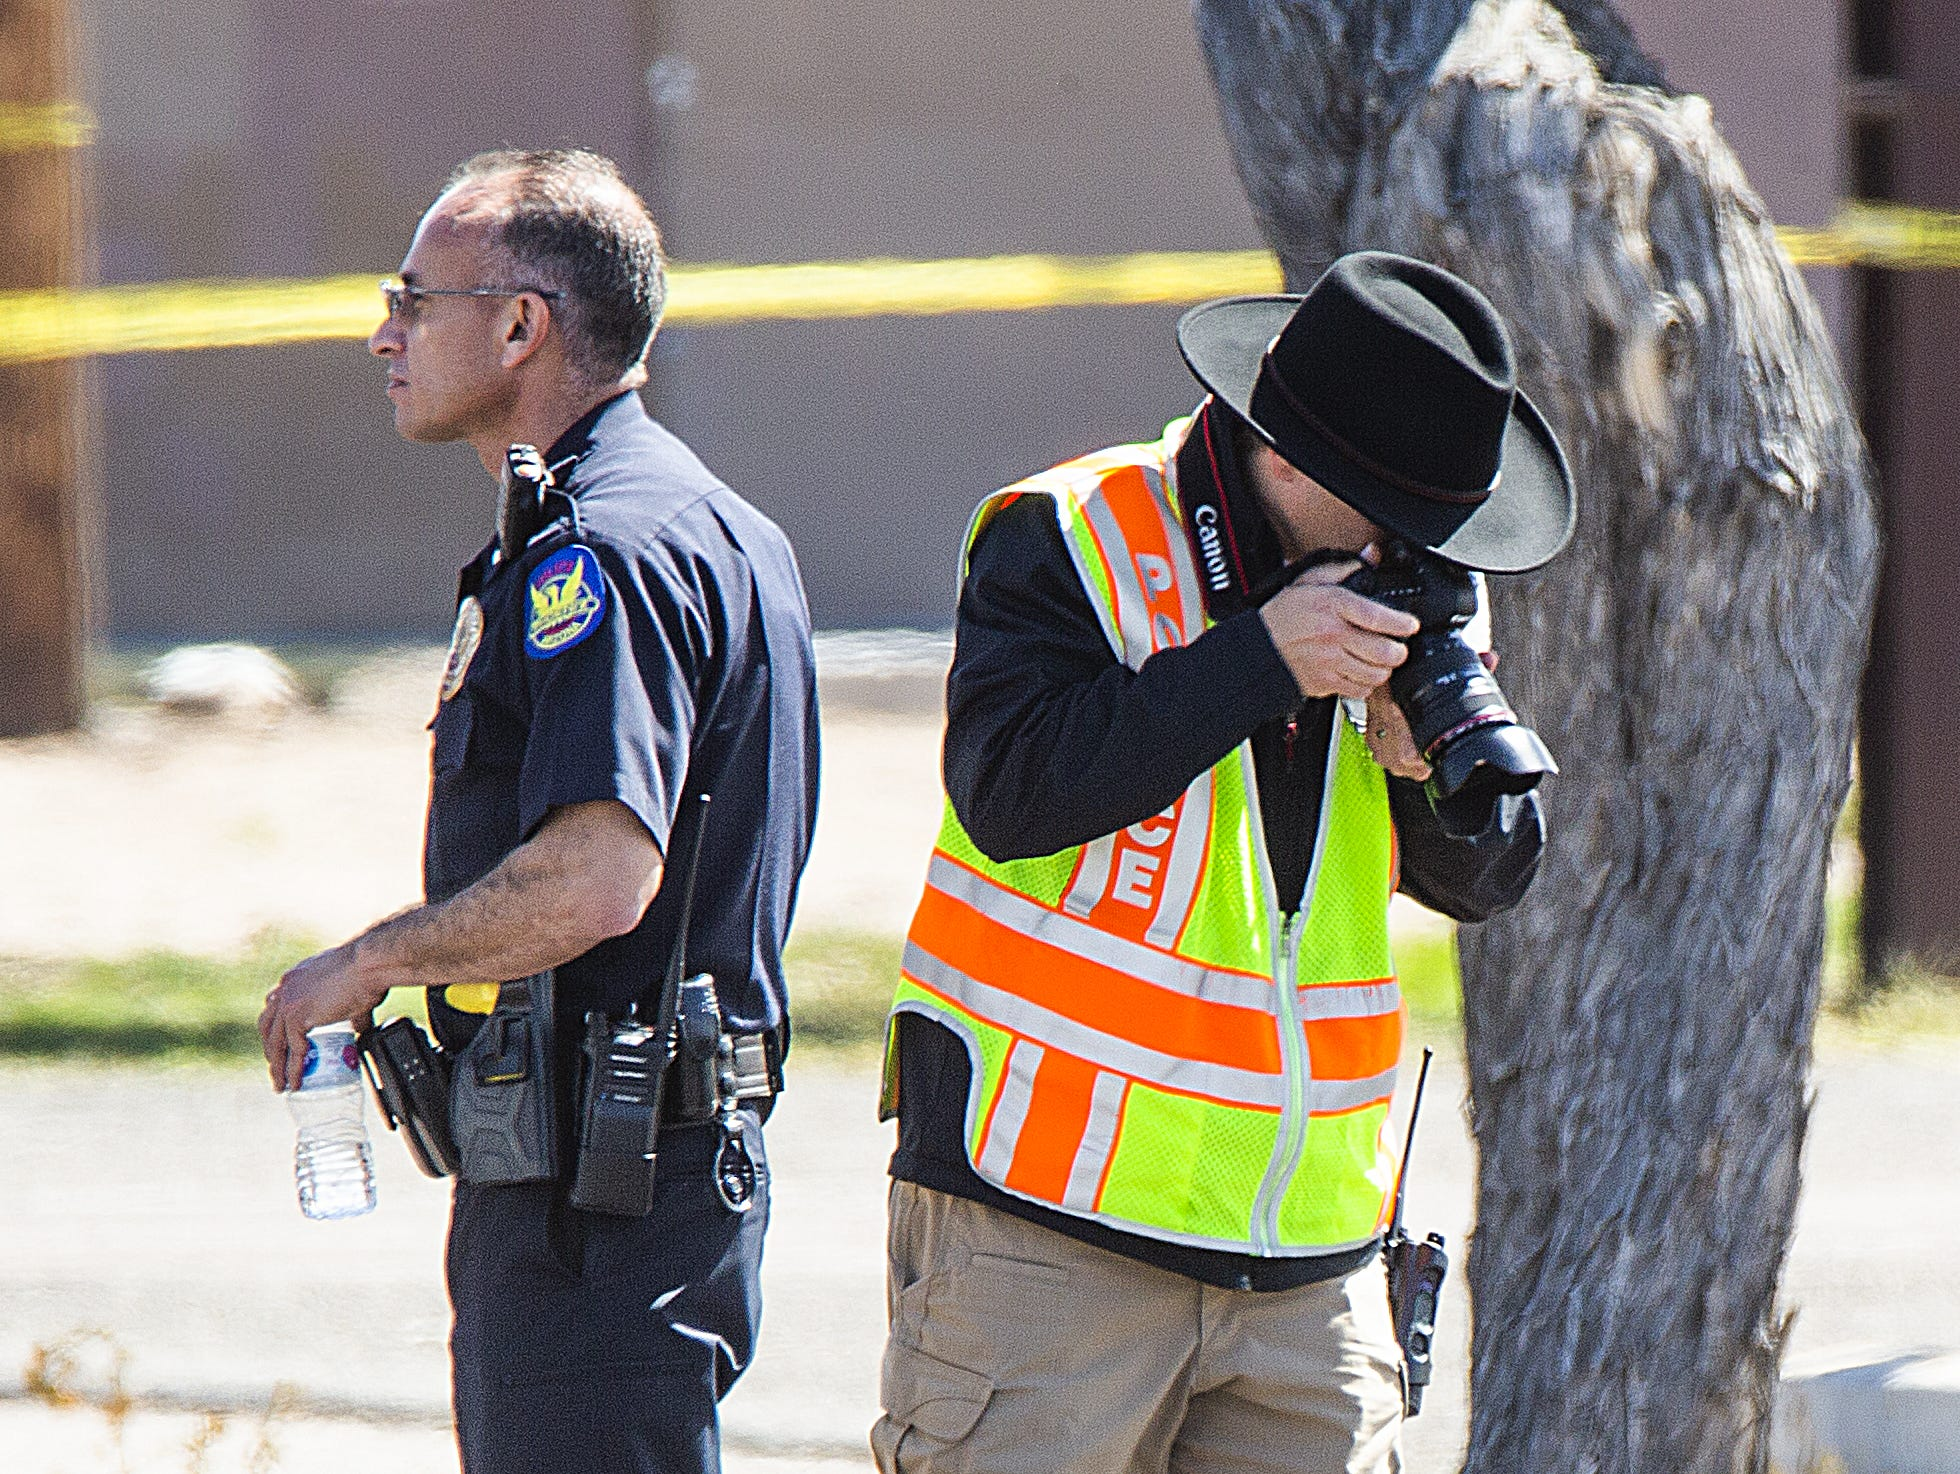 A police photographer takes photos the scene at Indian School Road near 75th Avenue in Phoenix where a police officer was hit while investigating a crash on March 21, 2019.